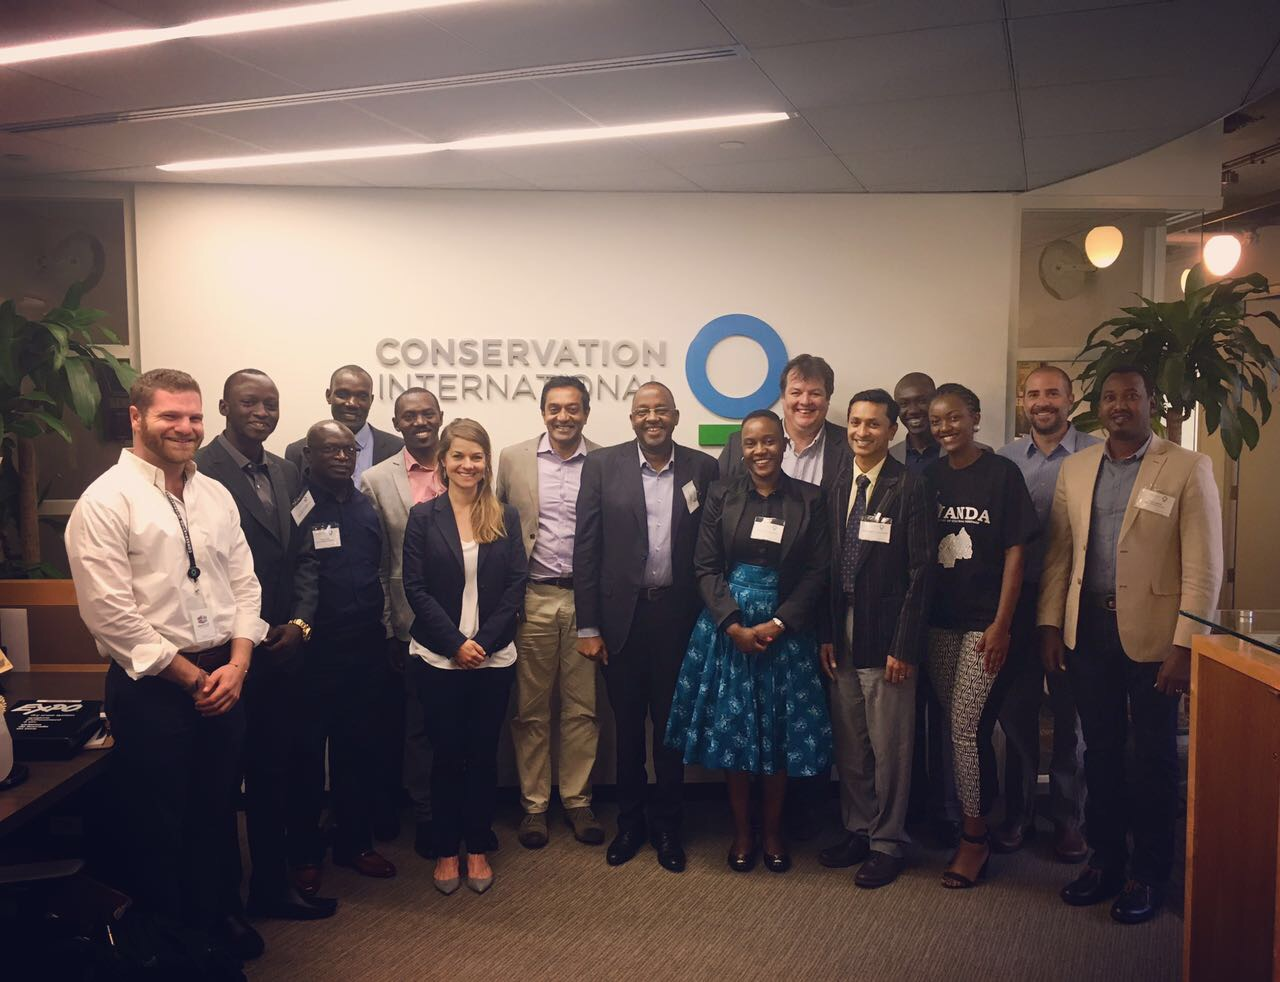 Trip participants with the CEO of Conservation International, at CI's headquarters in Washington D.C.